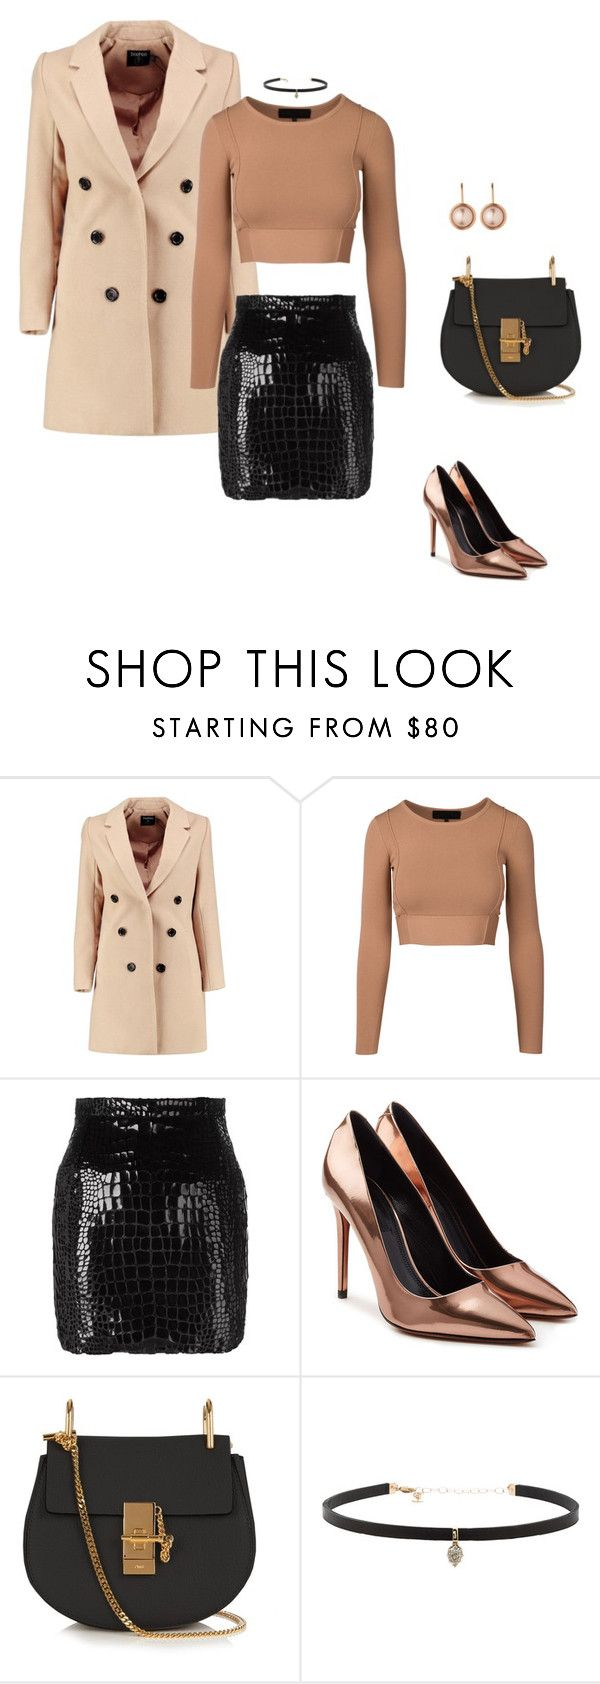 """beige chic"" by katka-klimova ❤ liked on Polyvore featuring Boohoo, Yves Saint Laurent, Alexander Wang, Chloé, Carbon & Hyde and Dyrberg/Kern"